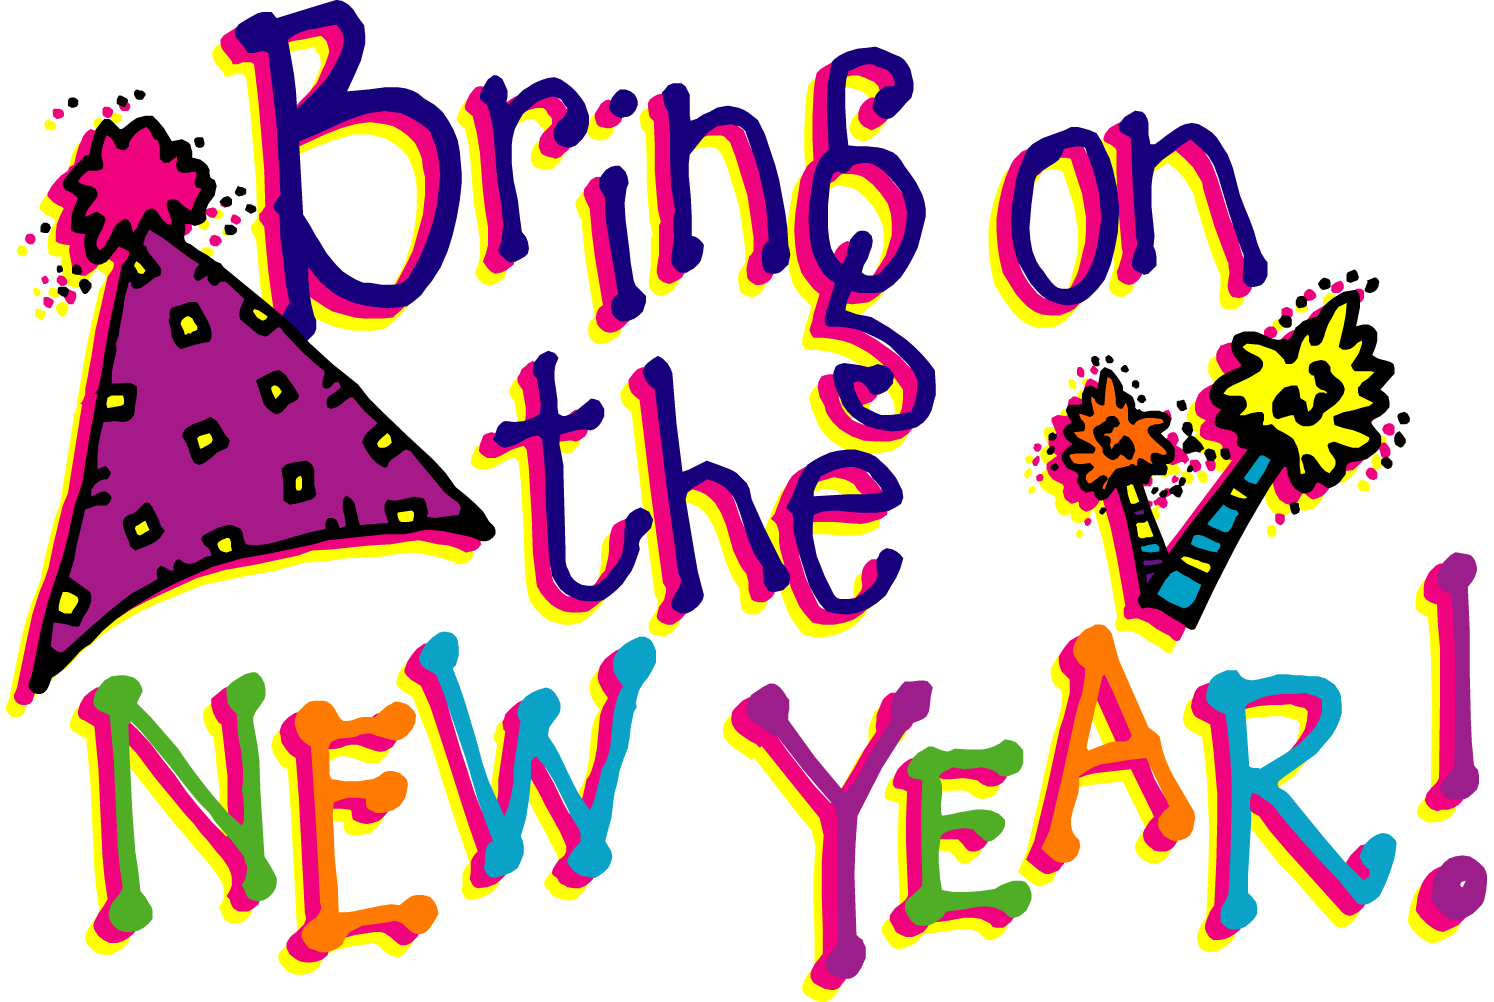 New Years Clip Art PG 1. Graphics And Or-New Years Clip Art PG 1. Graphics And Or Fonts .-11